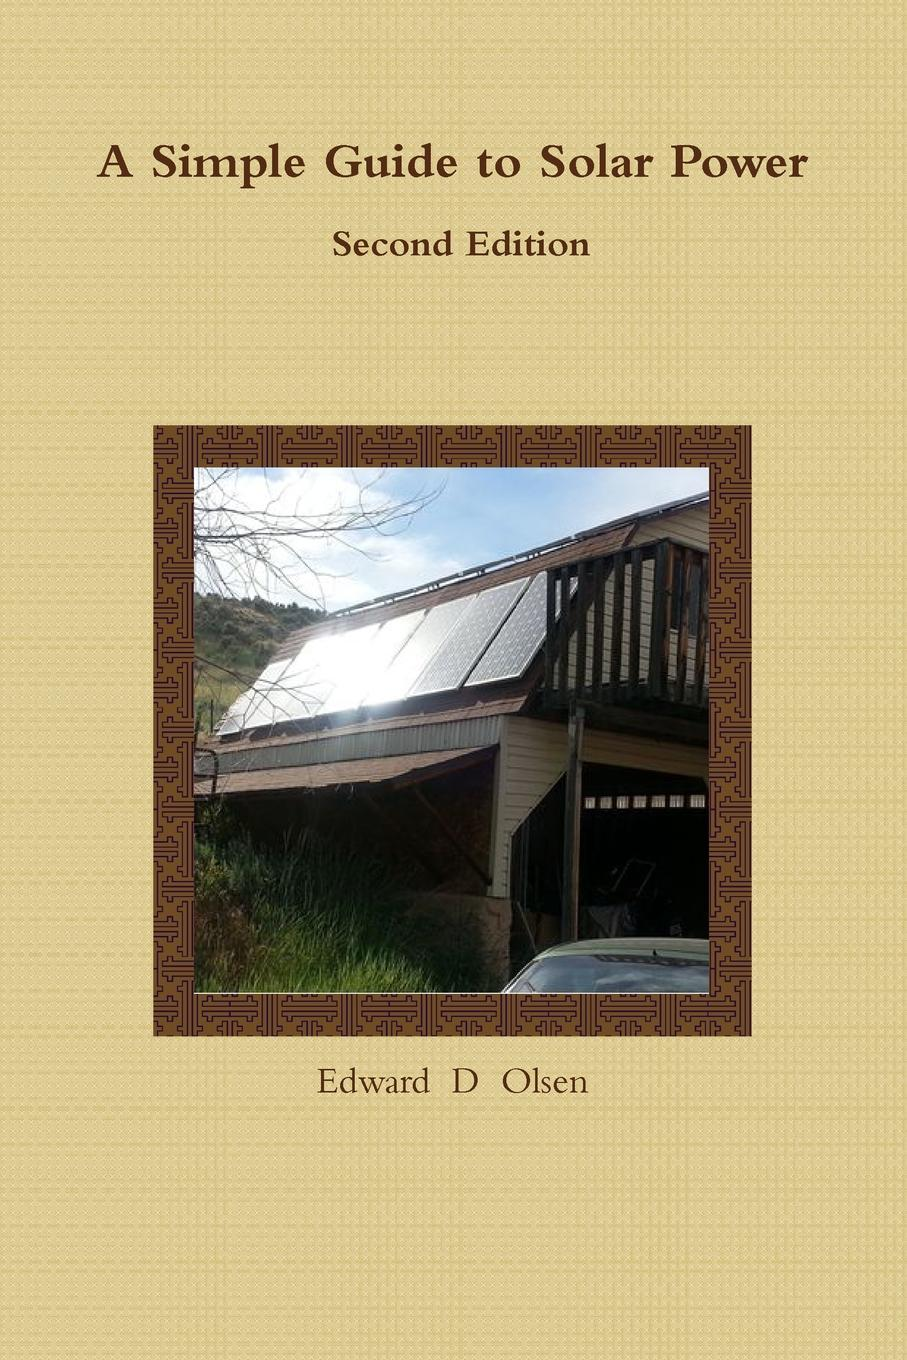 Edward Olsen A Simple Guide to Solar Power - Second Edition аккумулятор для ноутбука ibatt для samsung ativ book 2 270e5v np r480 np rv410l r525 jv06 rv520 s0a rv709 np270e5e x05 r540 js05 rc510 s04 rc530 s09 rf511 s03 rv410 a02 rv520 s08 rv718 300e5a s01 300e7a s05